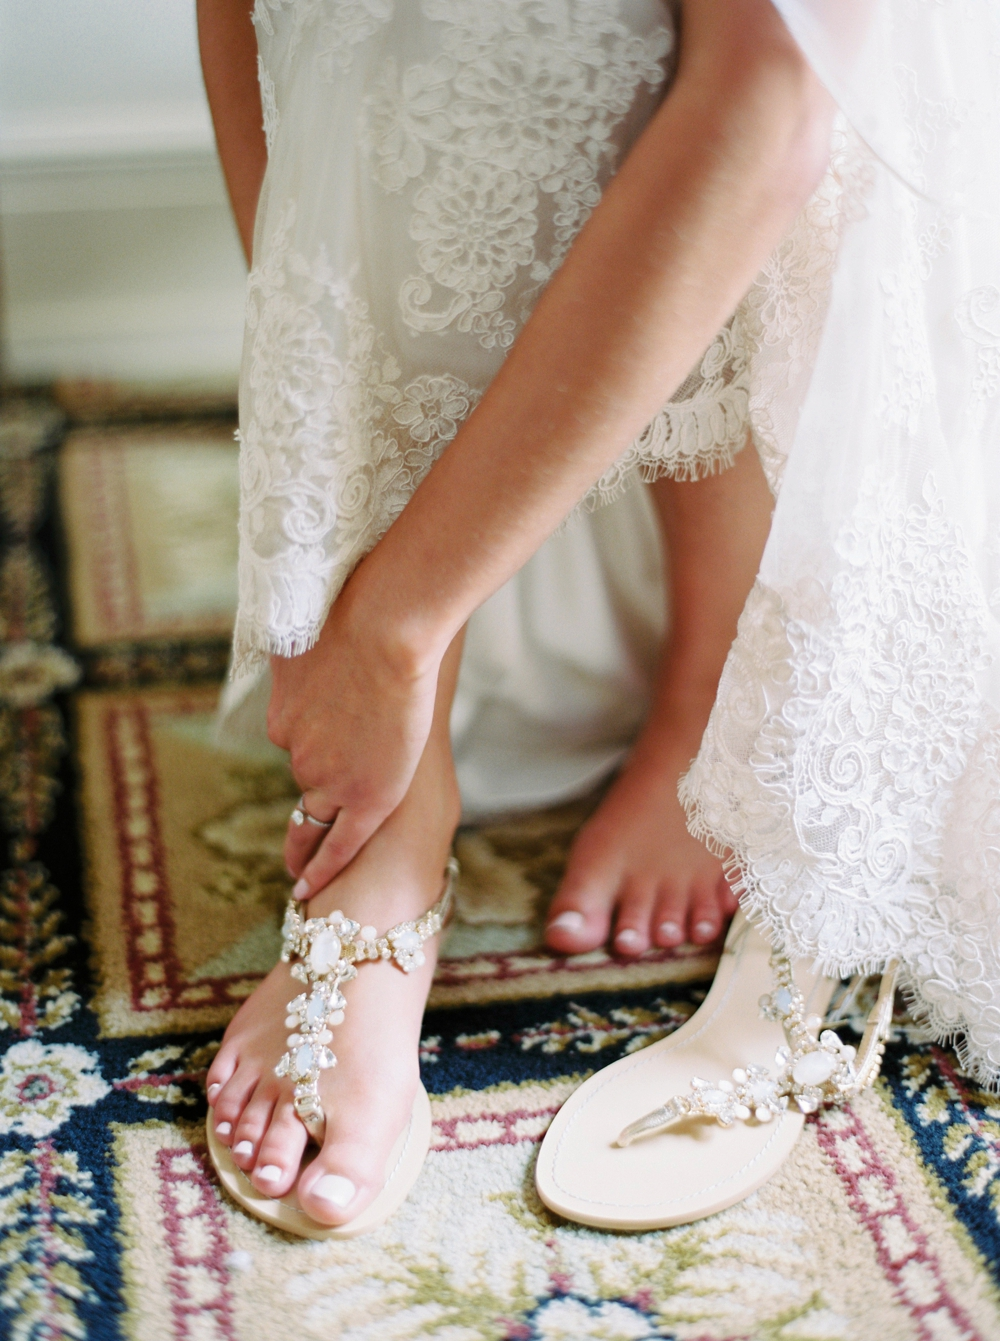 bride getting dressed bella belle shoes | Banff springs wedding photographers | fairmont banff rocky mountain wedding | Justine Milton fine art film Photography